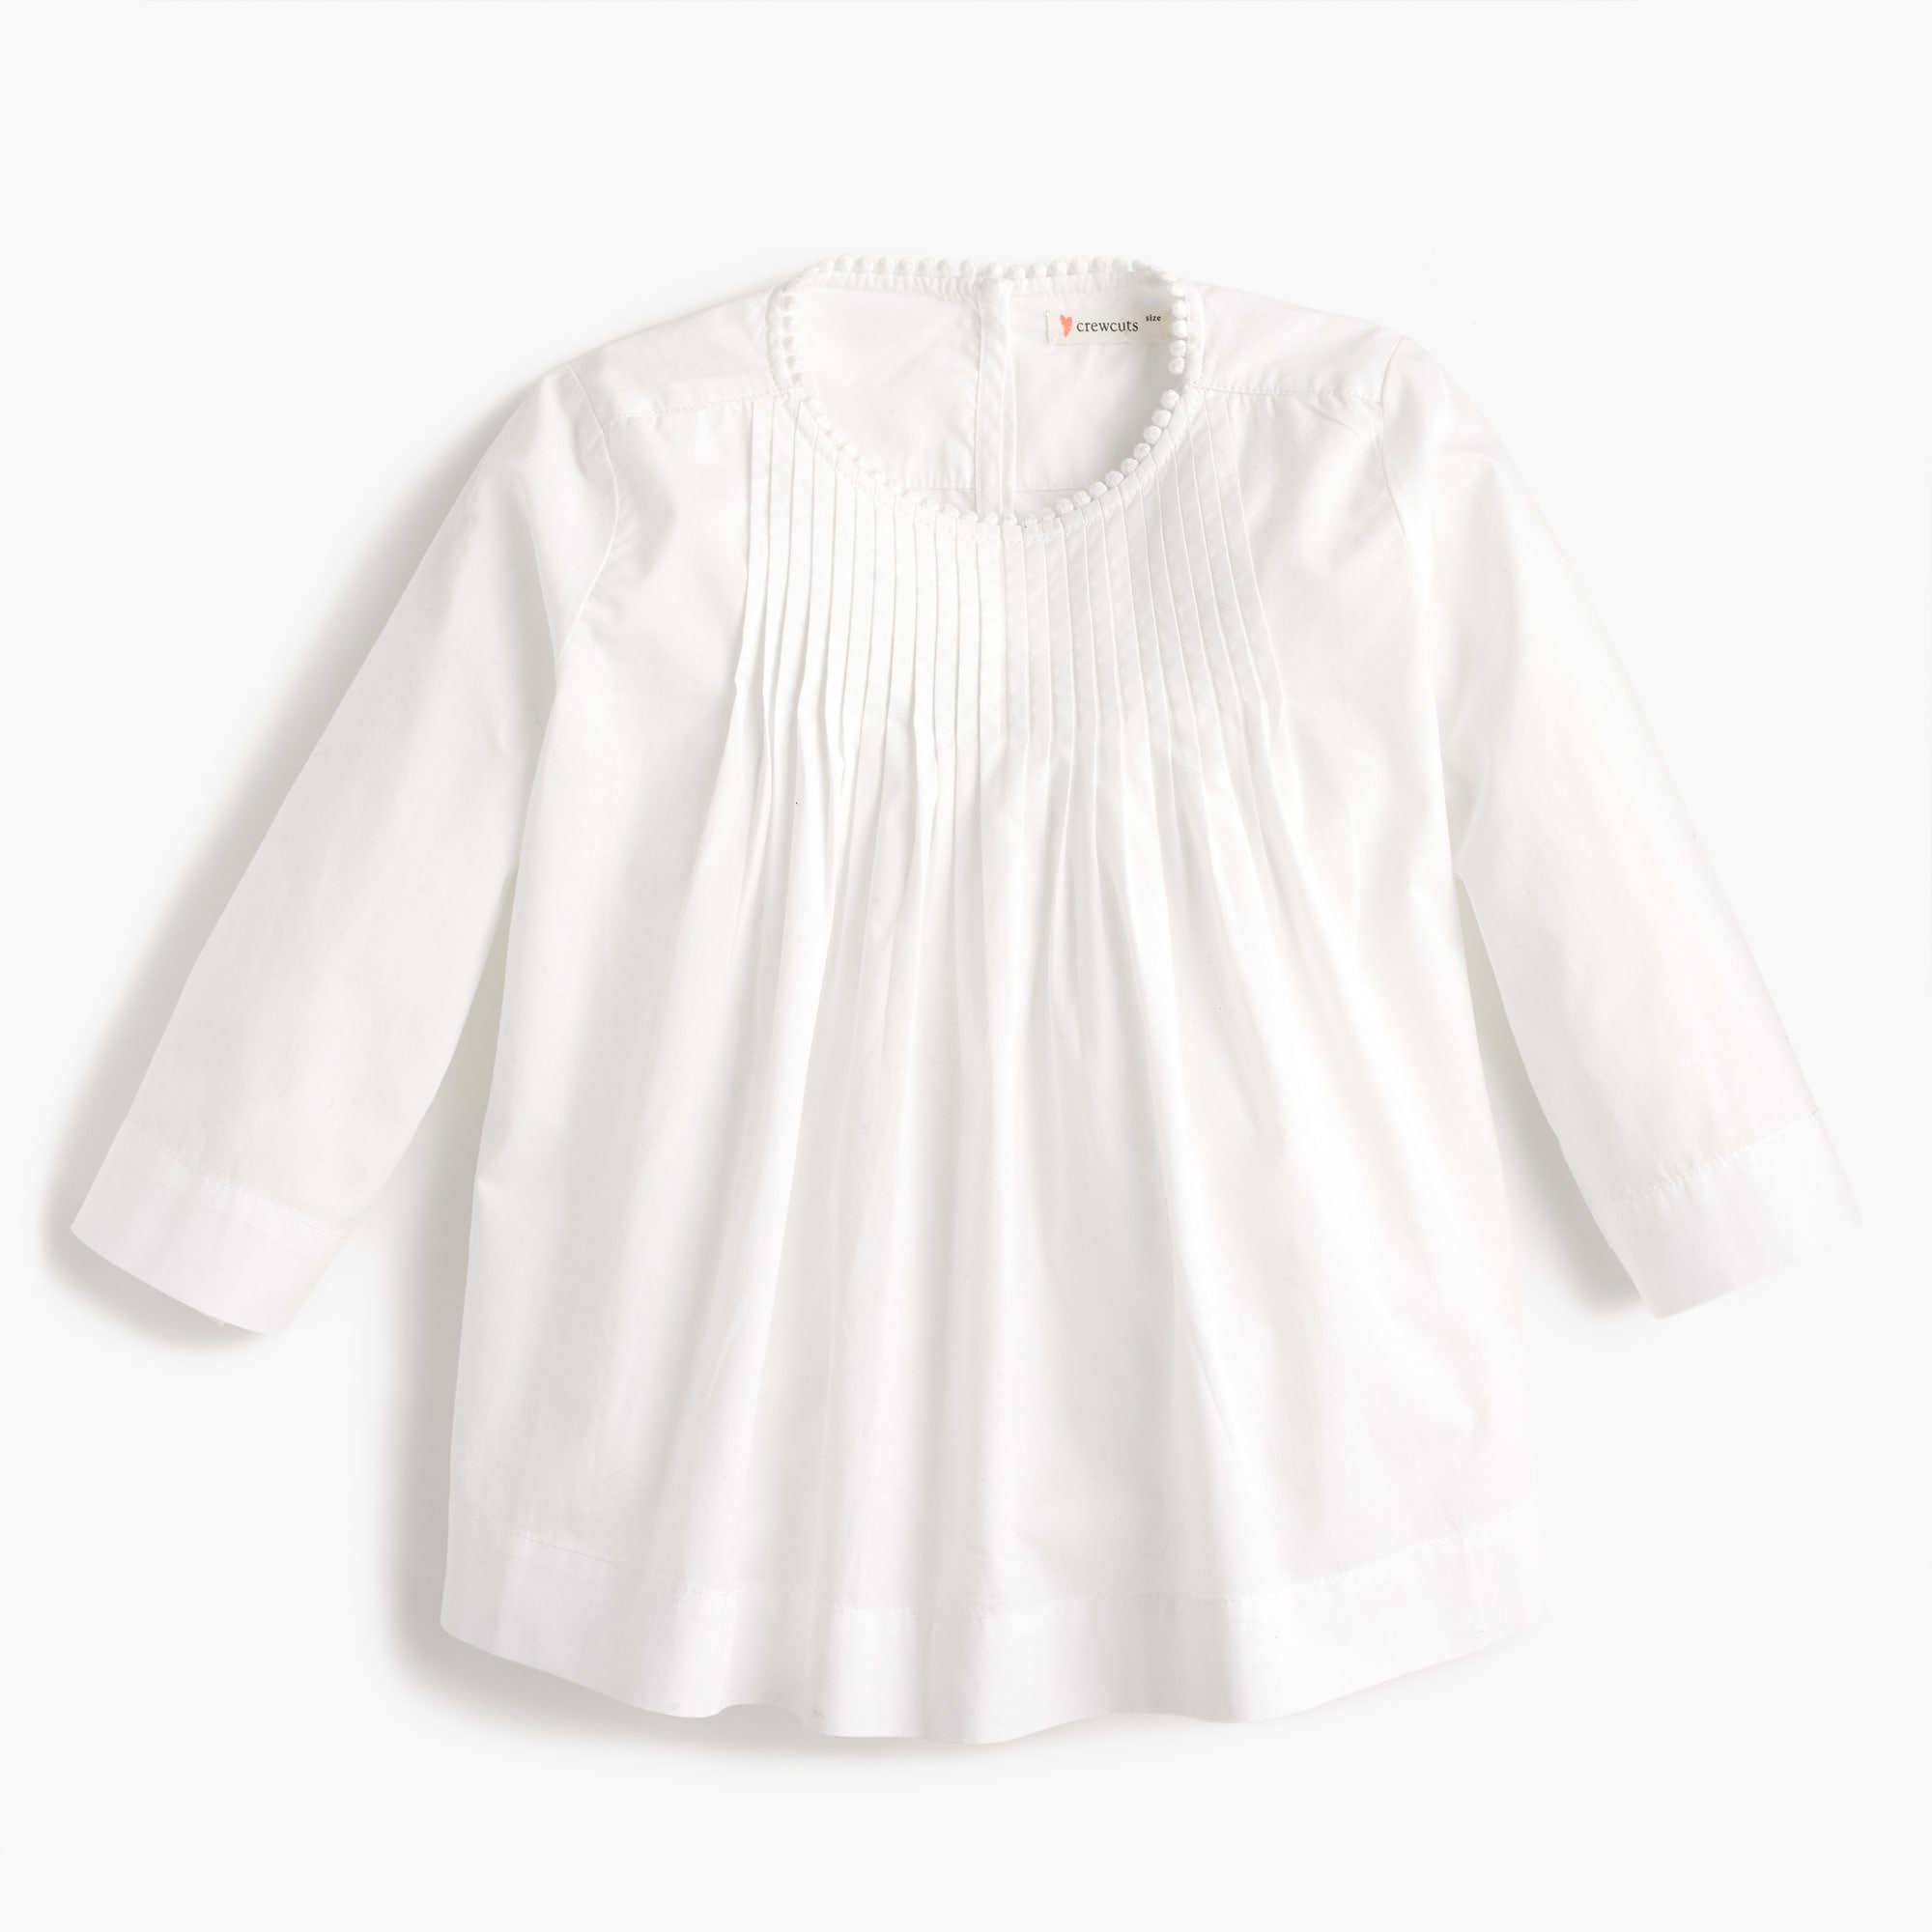 girls' pleated top with pom-pom trim : girl novelty shirts